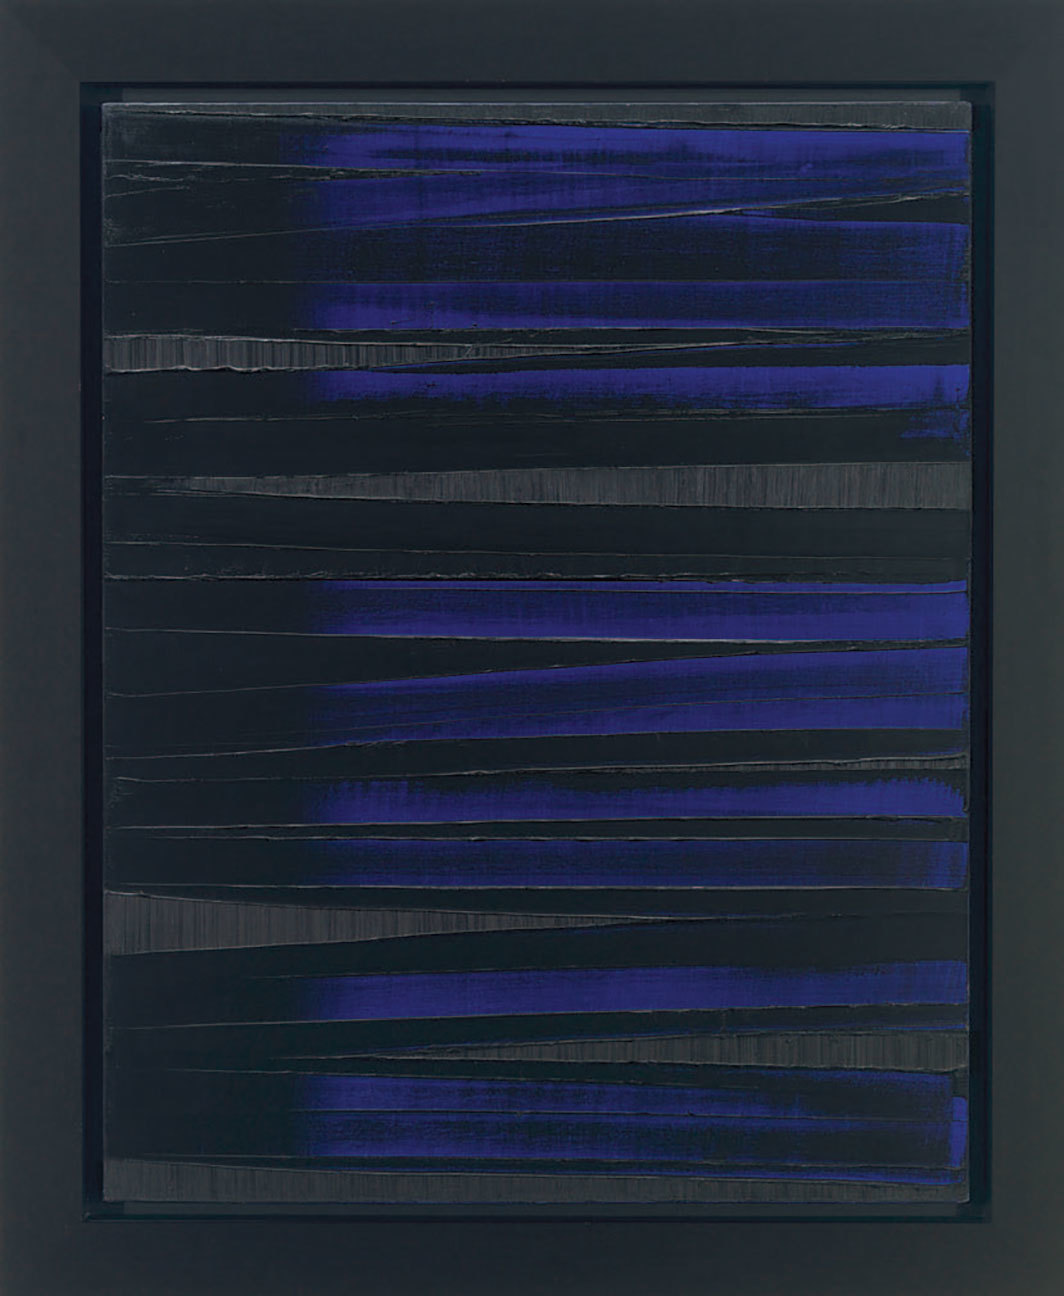 "Pierre Soulages, Peinture 130 x 102 cm, 27 août 1986 (Painting 130 x 102 cm, August 27, 1986), oil on canvas, 51 1⁄8 × 40 1⁄8""."